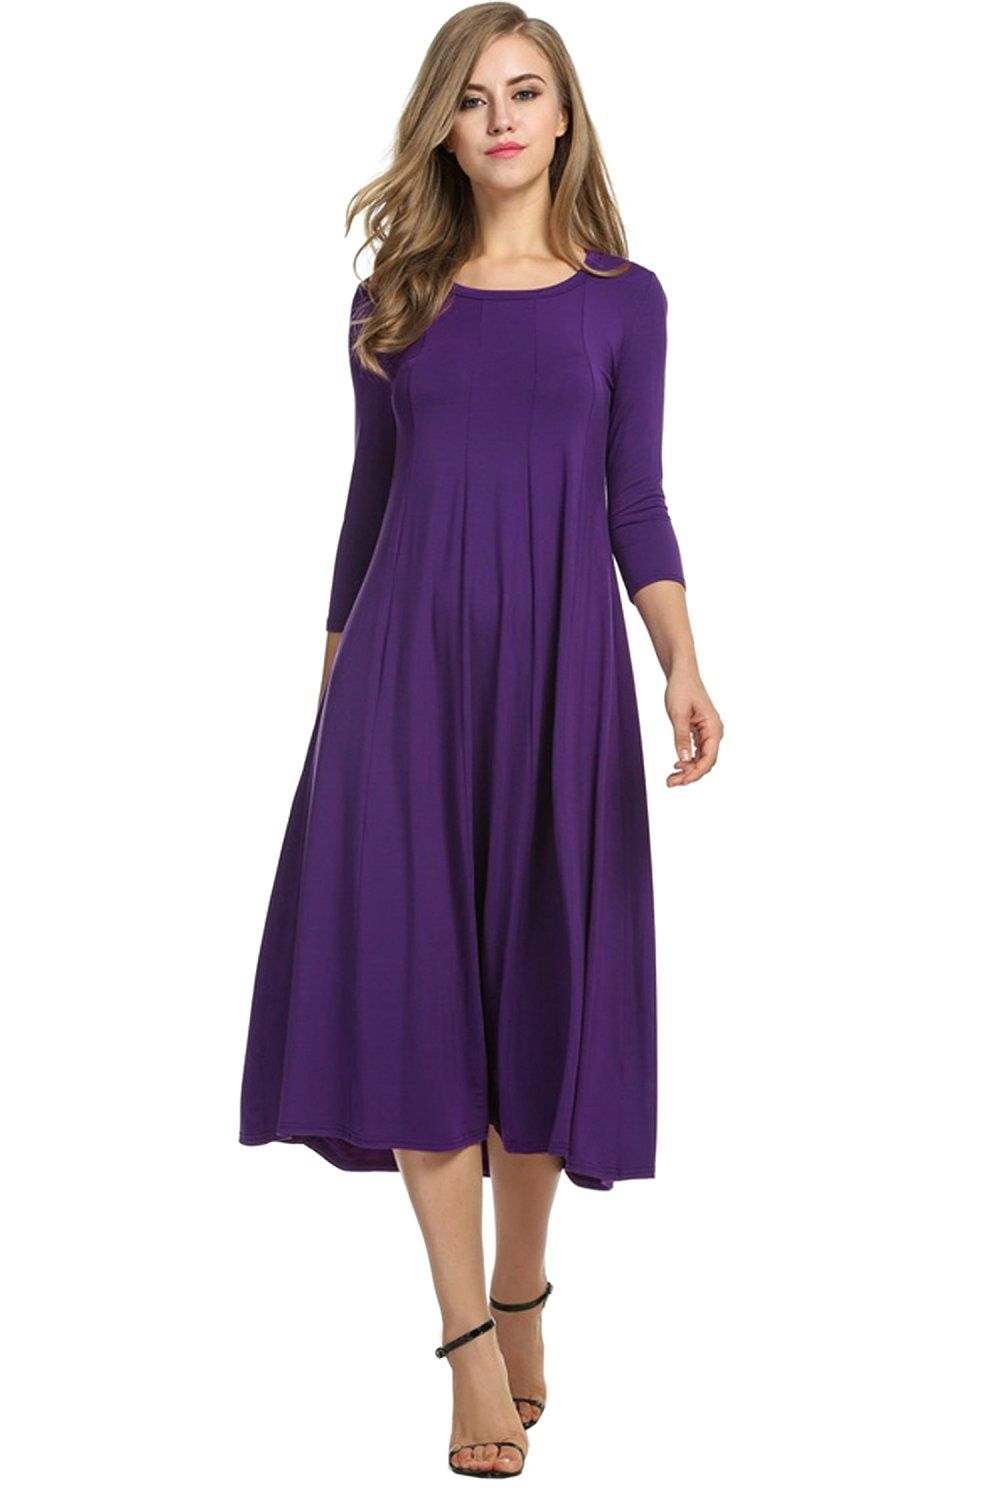 Hotouch Women S 3 4 Sleeve A Line And Flare Midi Long Dress At Amazon Women S Clothing Store Long Midi Dress Vintage Dresses Casual Womens Dresses [ 1500 x 1000 Pixel ]